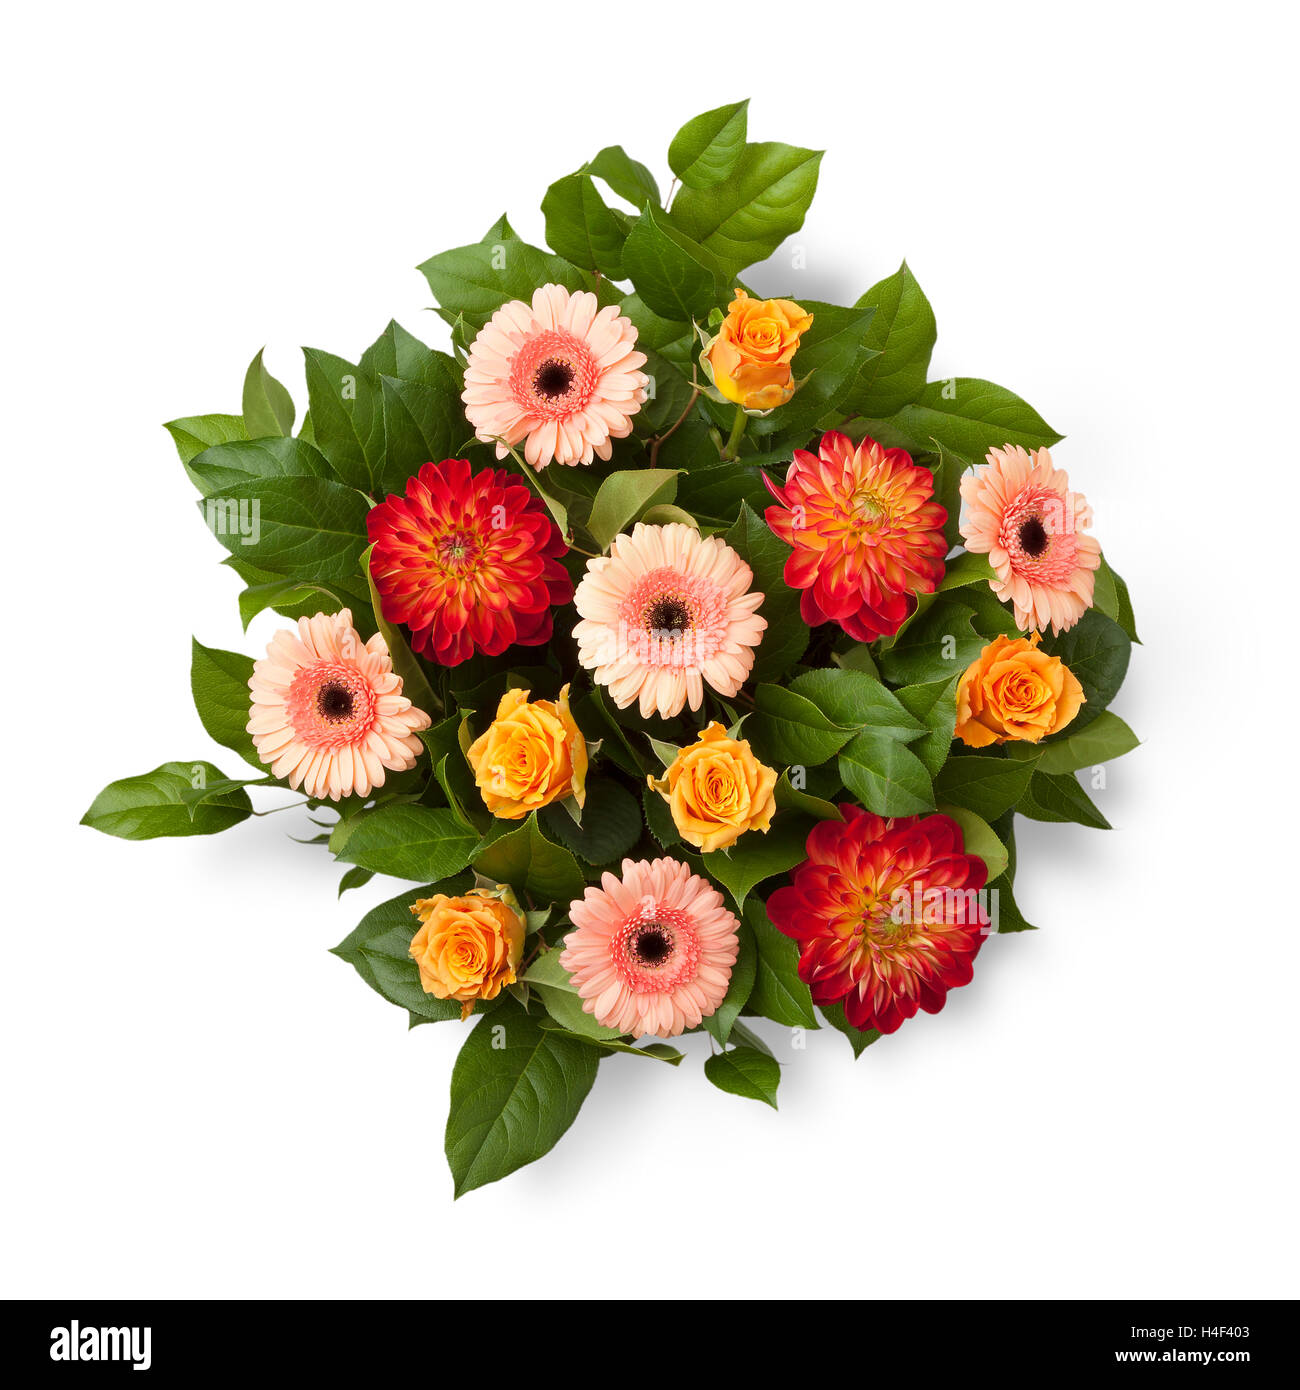 Bouquet With Autumn Flowers On White Background Stock Photo